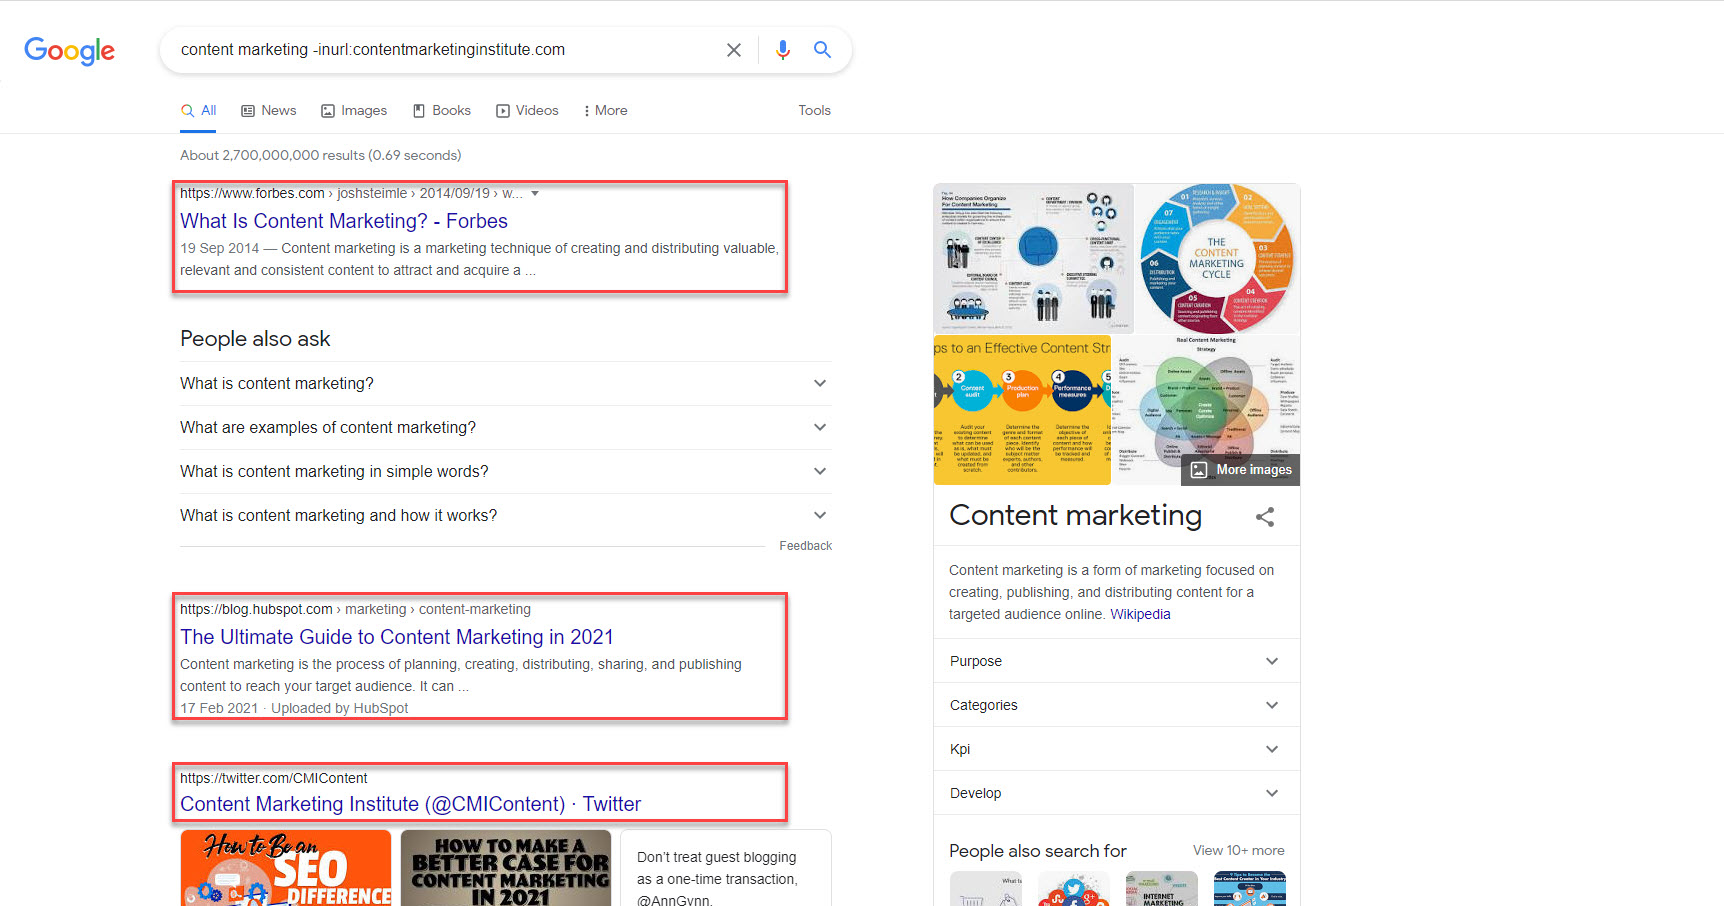 search query content marketing with exclude operator